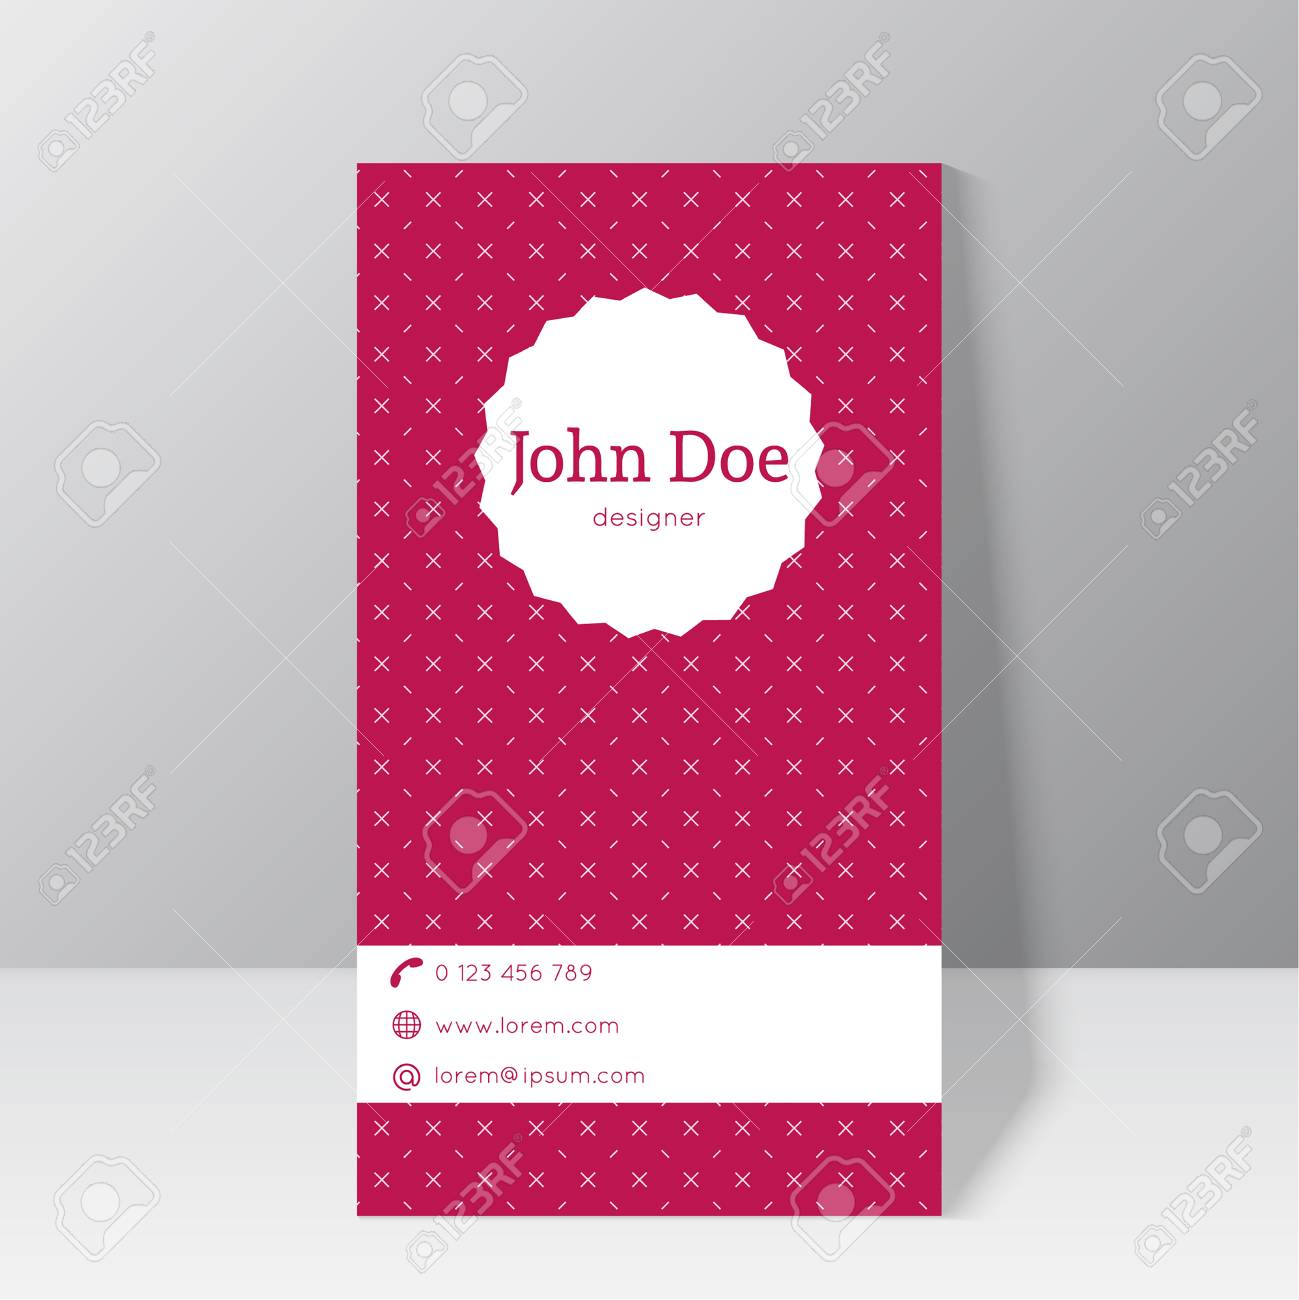 trendy business card template stationary standing near the wall with vintage label and elegant diagonal cross